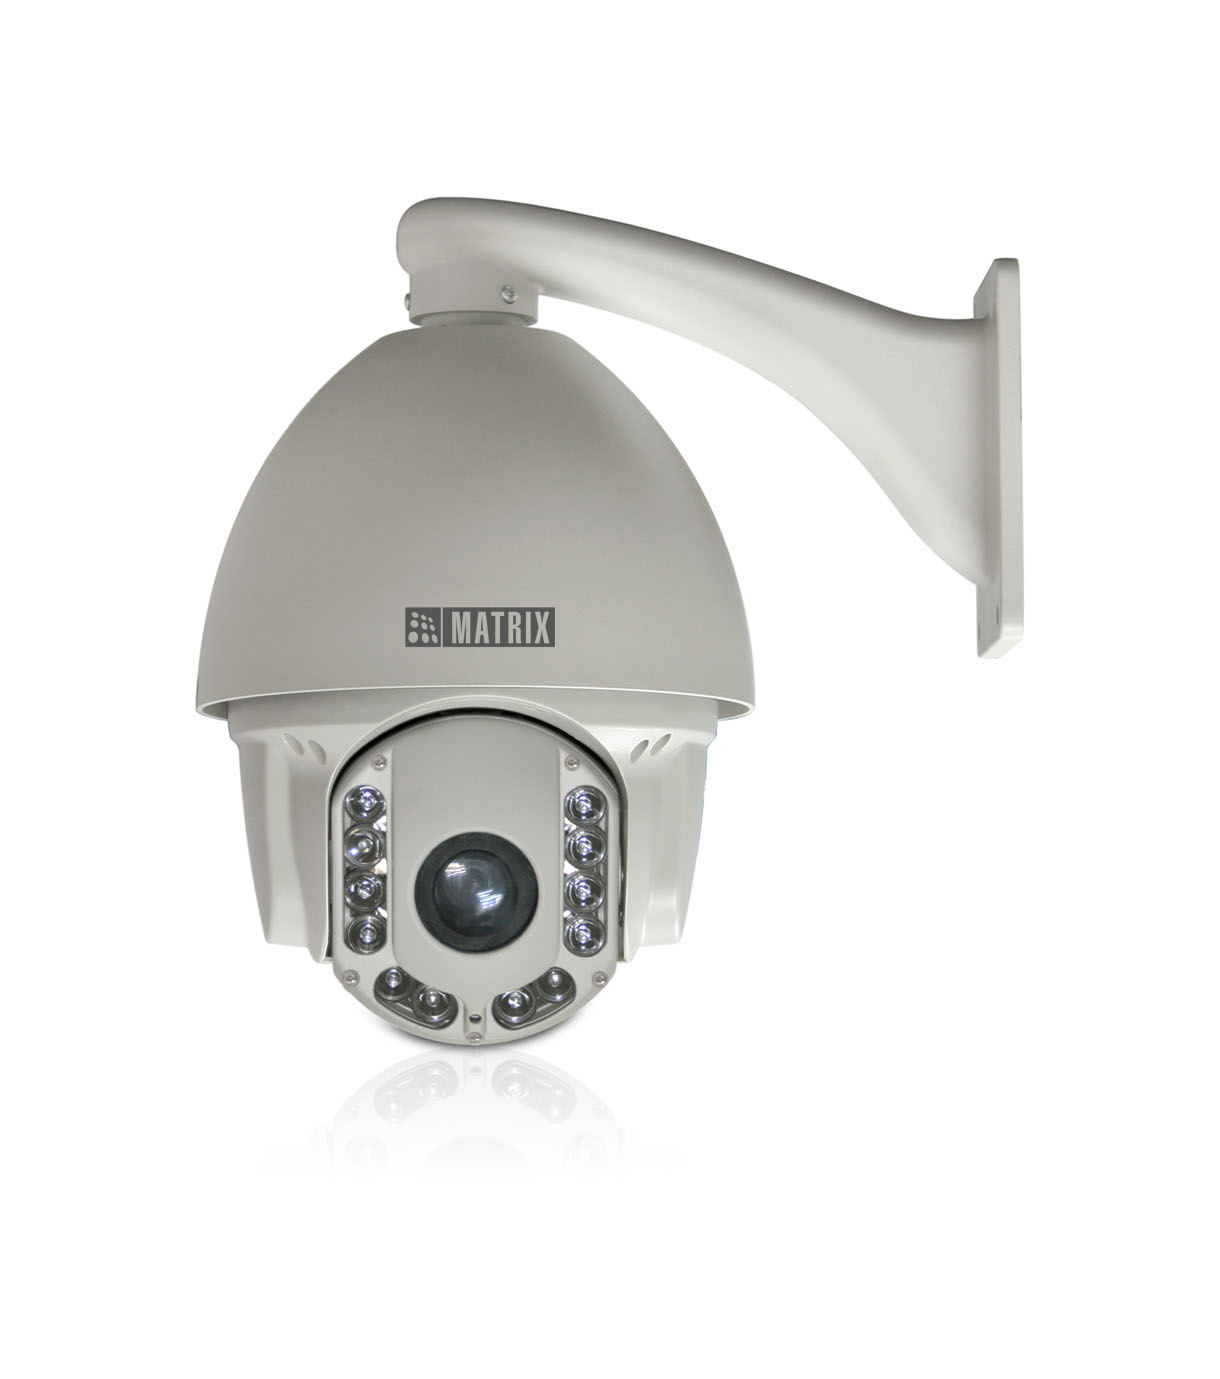 Matrix launched PTZ cameras